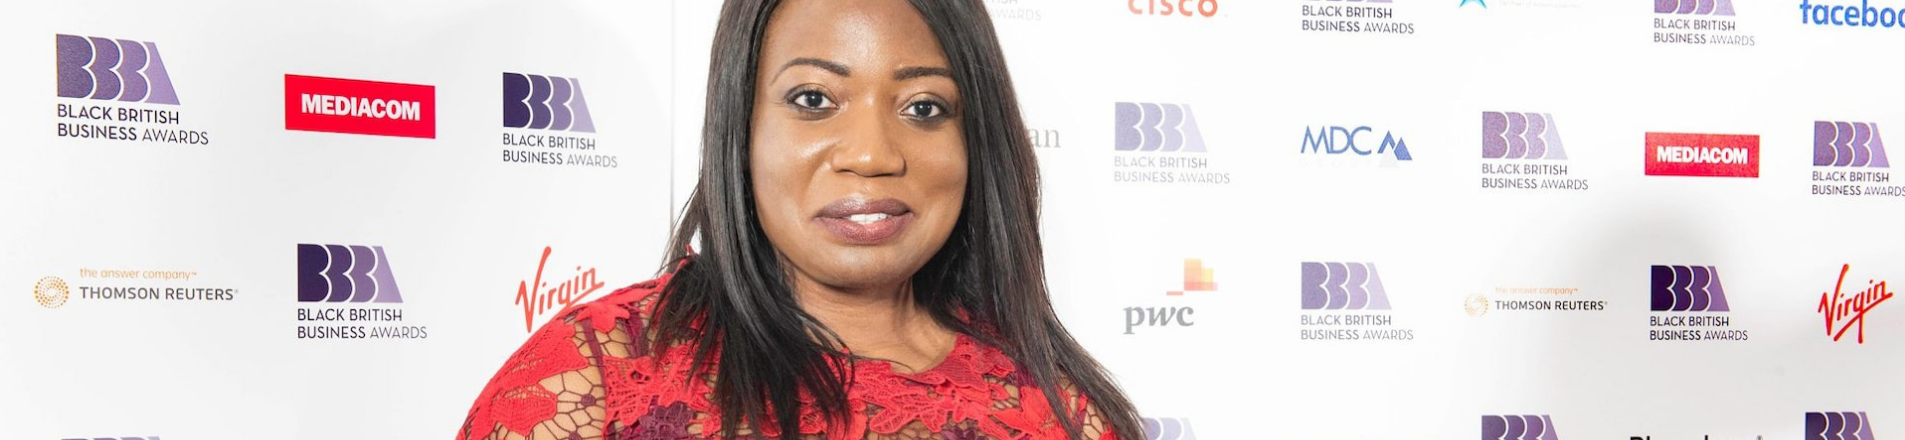 Roni Savage, Black Business Awards Business Person 2018